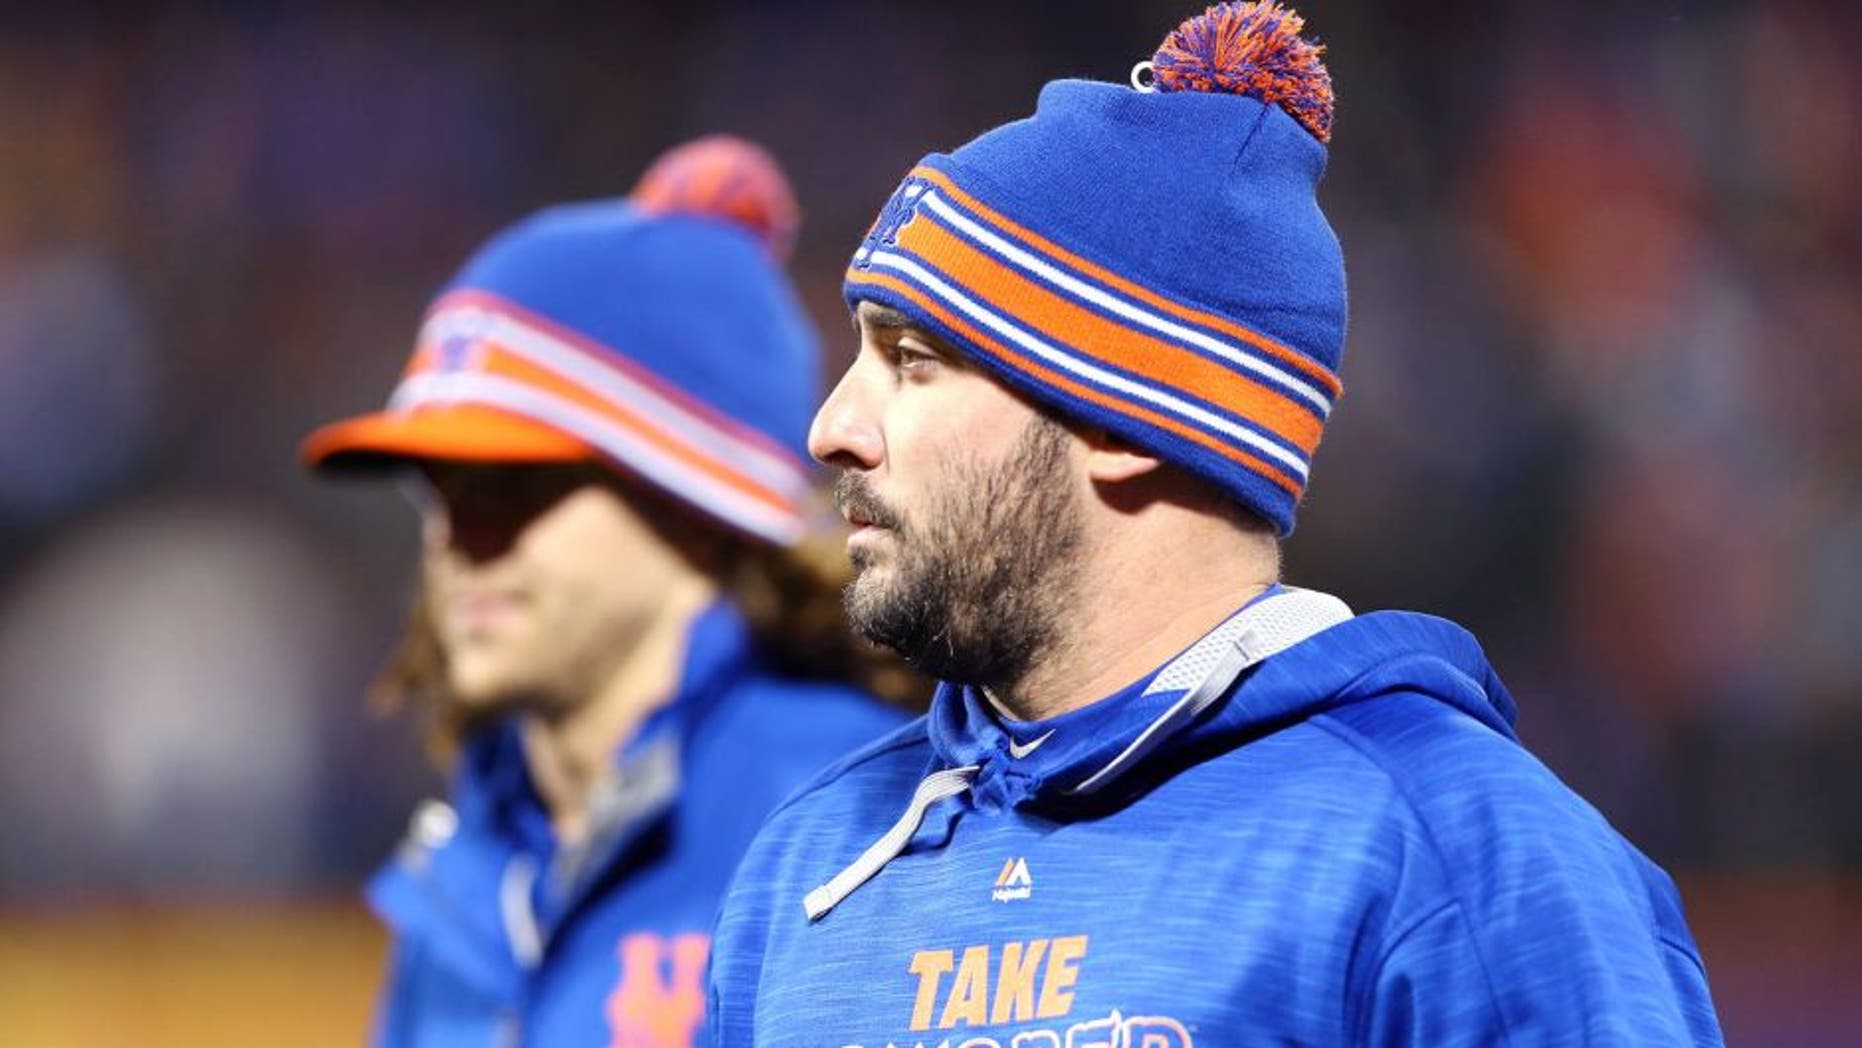 NEW YORK, NY - OCTOBER 18: Matt Harvey #33 and Jacob deGrom #48 of the New York Mets walk on the field prior to game two of the 2015 MLB National League Championship Series against the Chicago Cubs at Citi Field on October 18, 2015 in the Flushing neighborhood of the Queens borough of New York City. (Photo by Elsa/Getty Images)